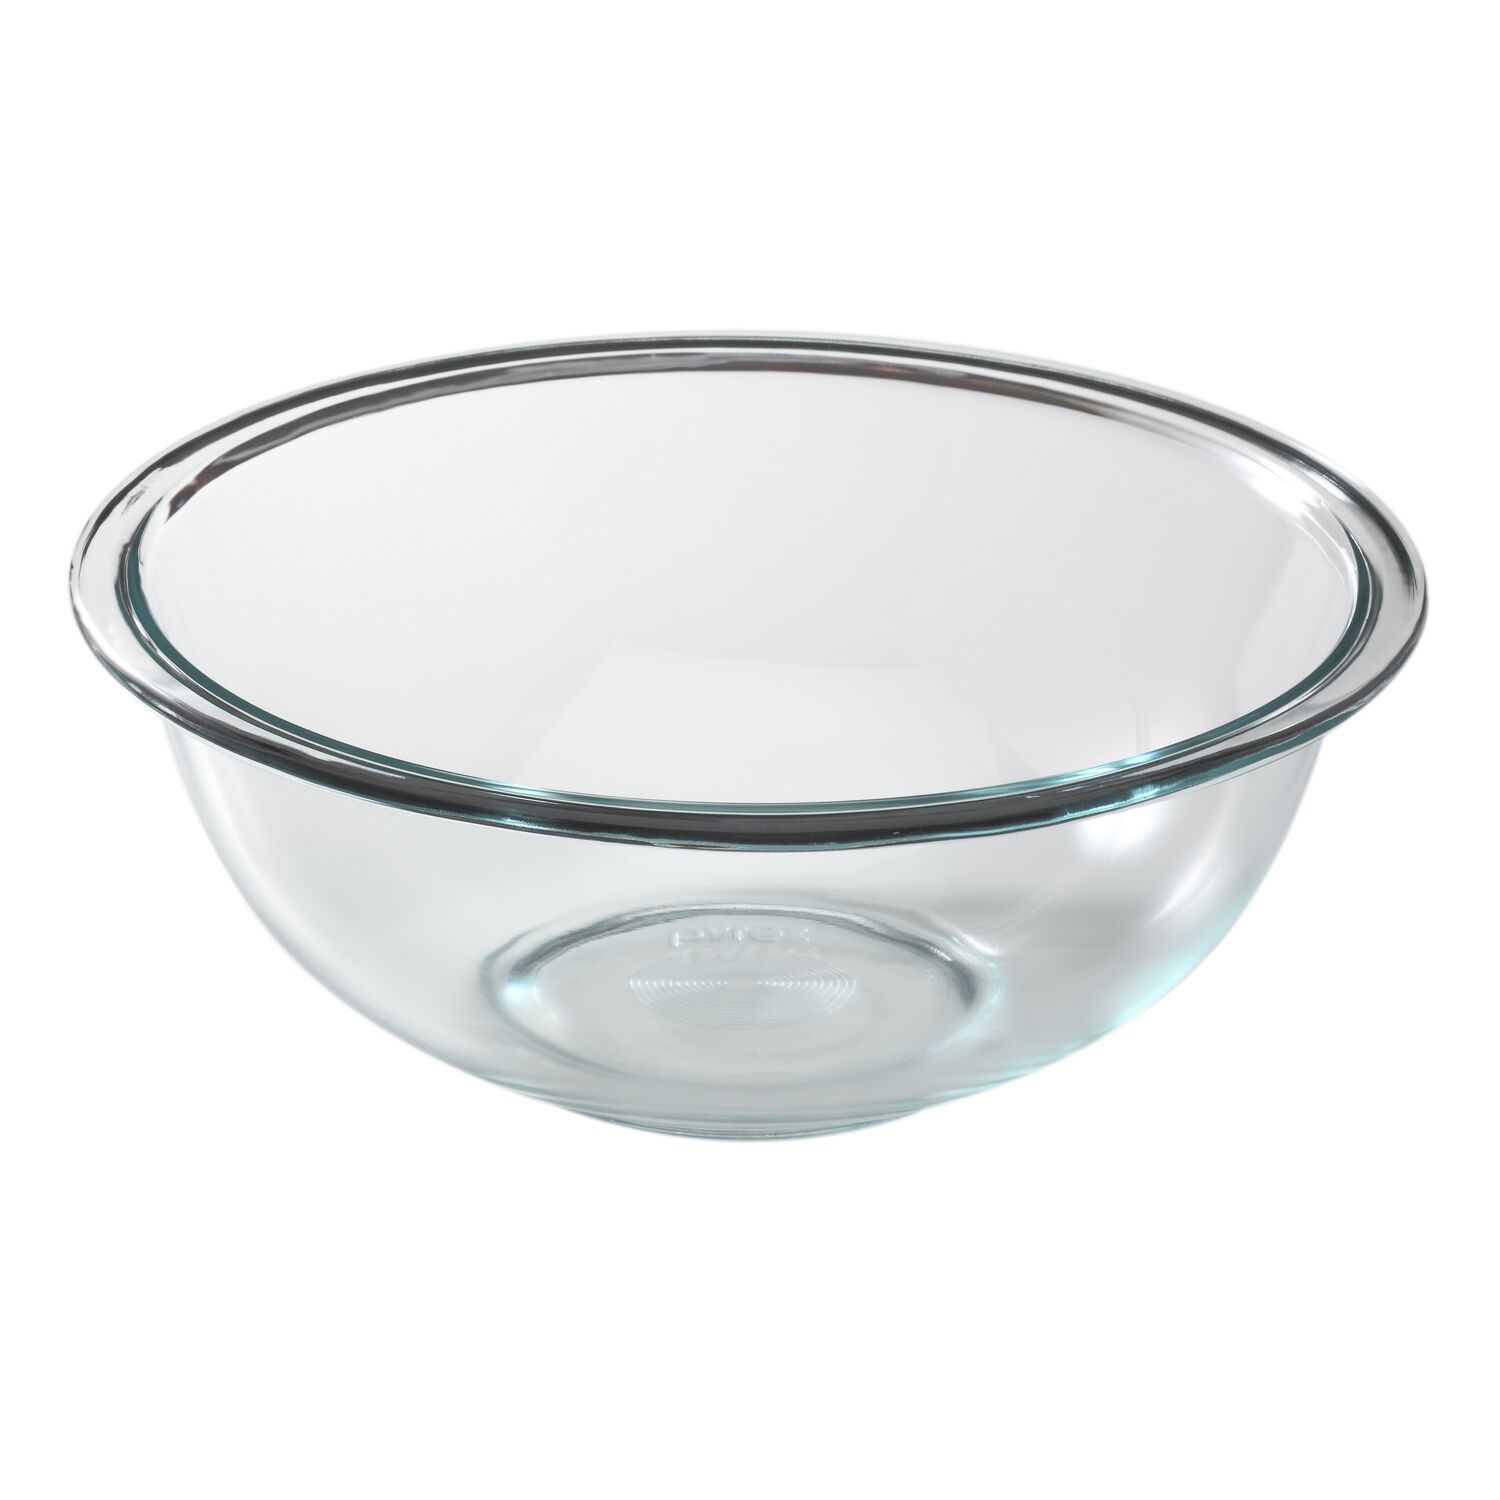 Pyrex Coupons And Discount Codes We have the latest and free pyrex coupon codes, discounts and promotion codes to give you the best savings. To use a coupon, simply click the coupon code and enter the code when checking out at the store.